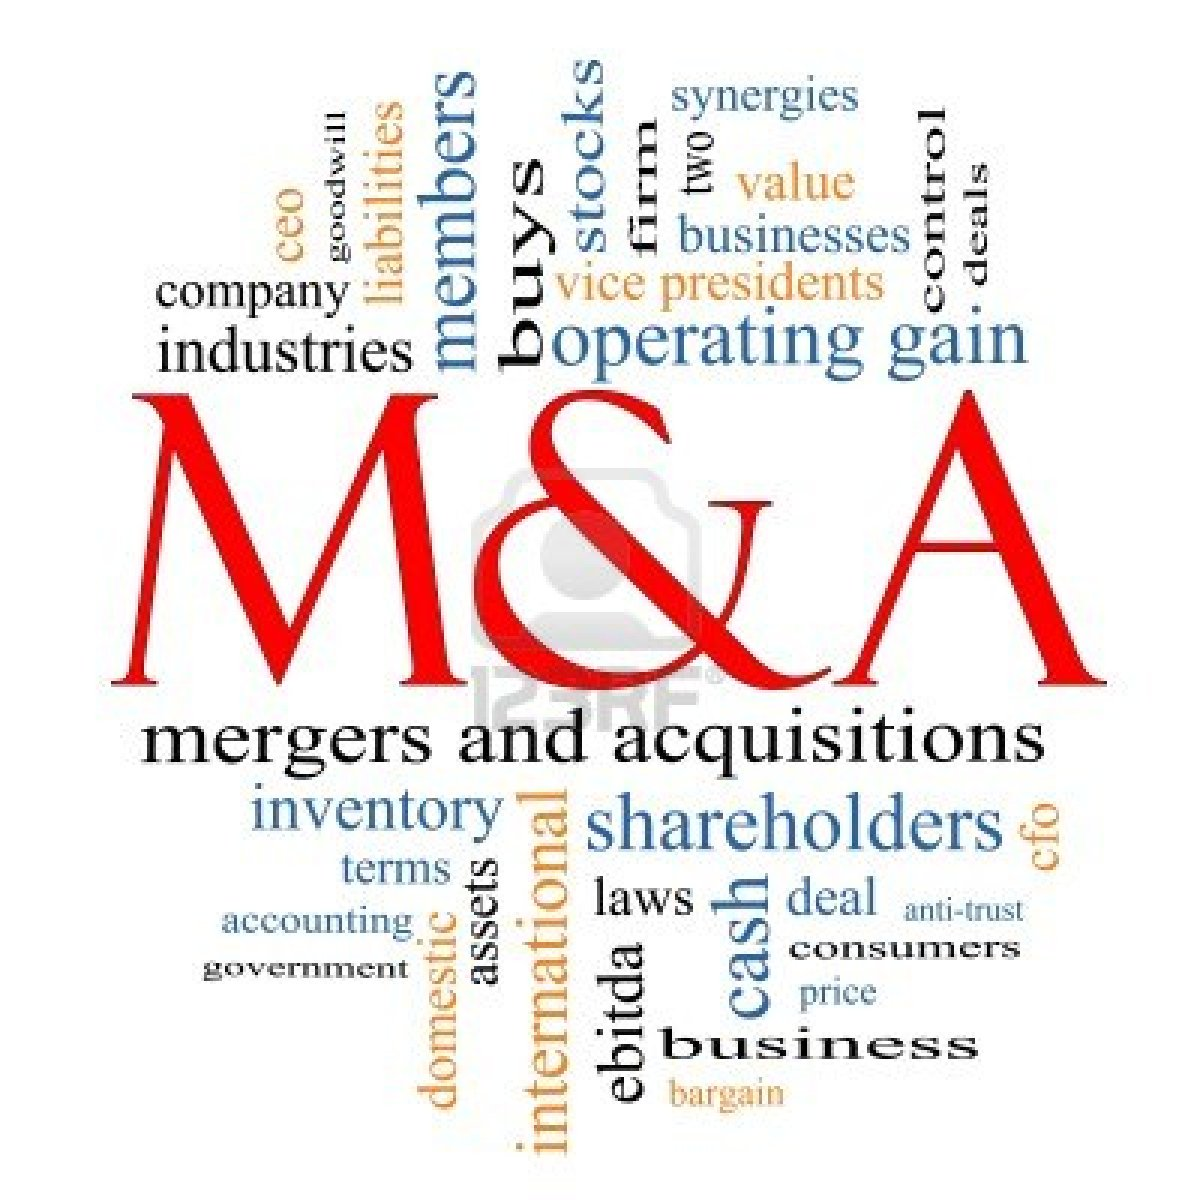 computech company case mergers acquisitions What are some of the best business case studies on mergers & acquisitions and corporate restructuring.